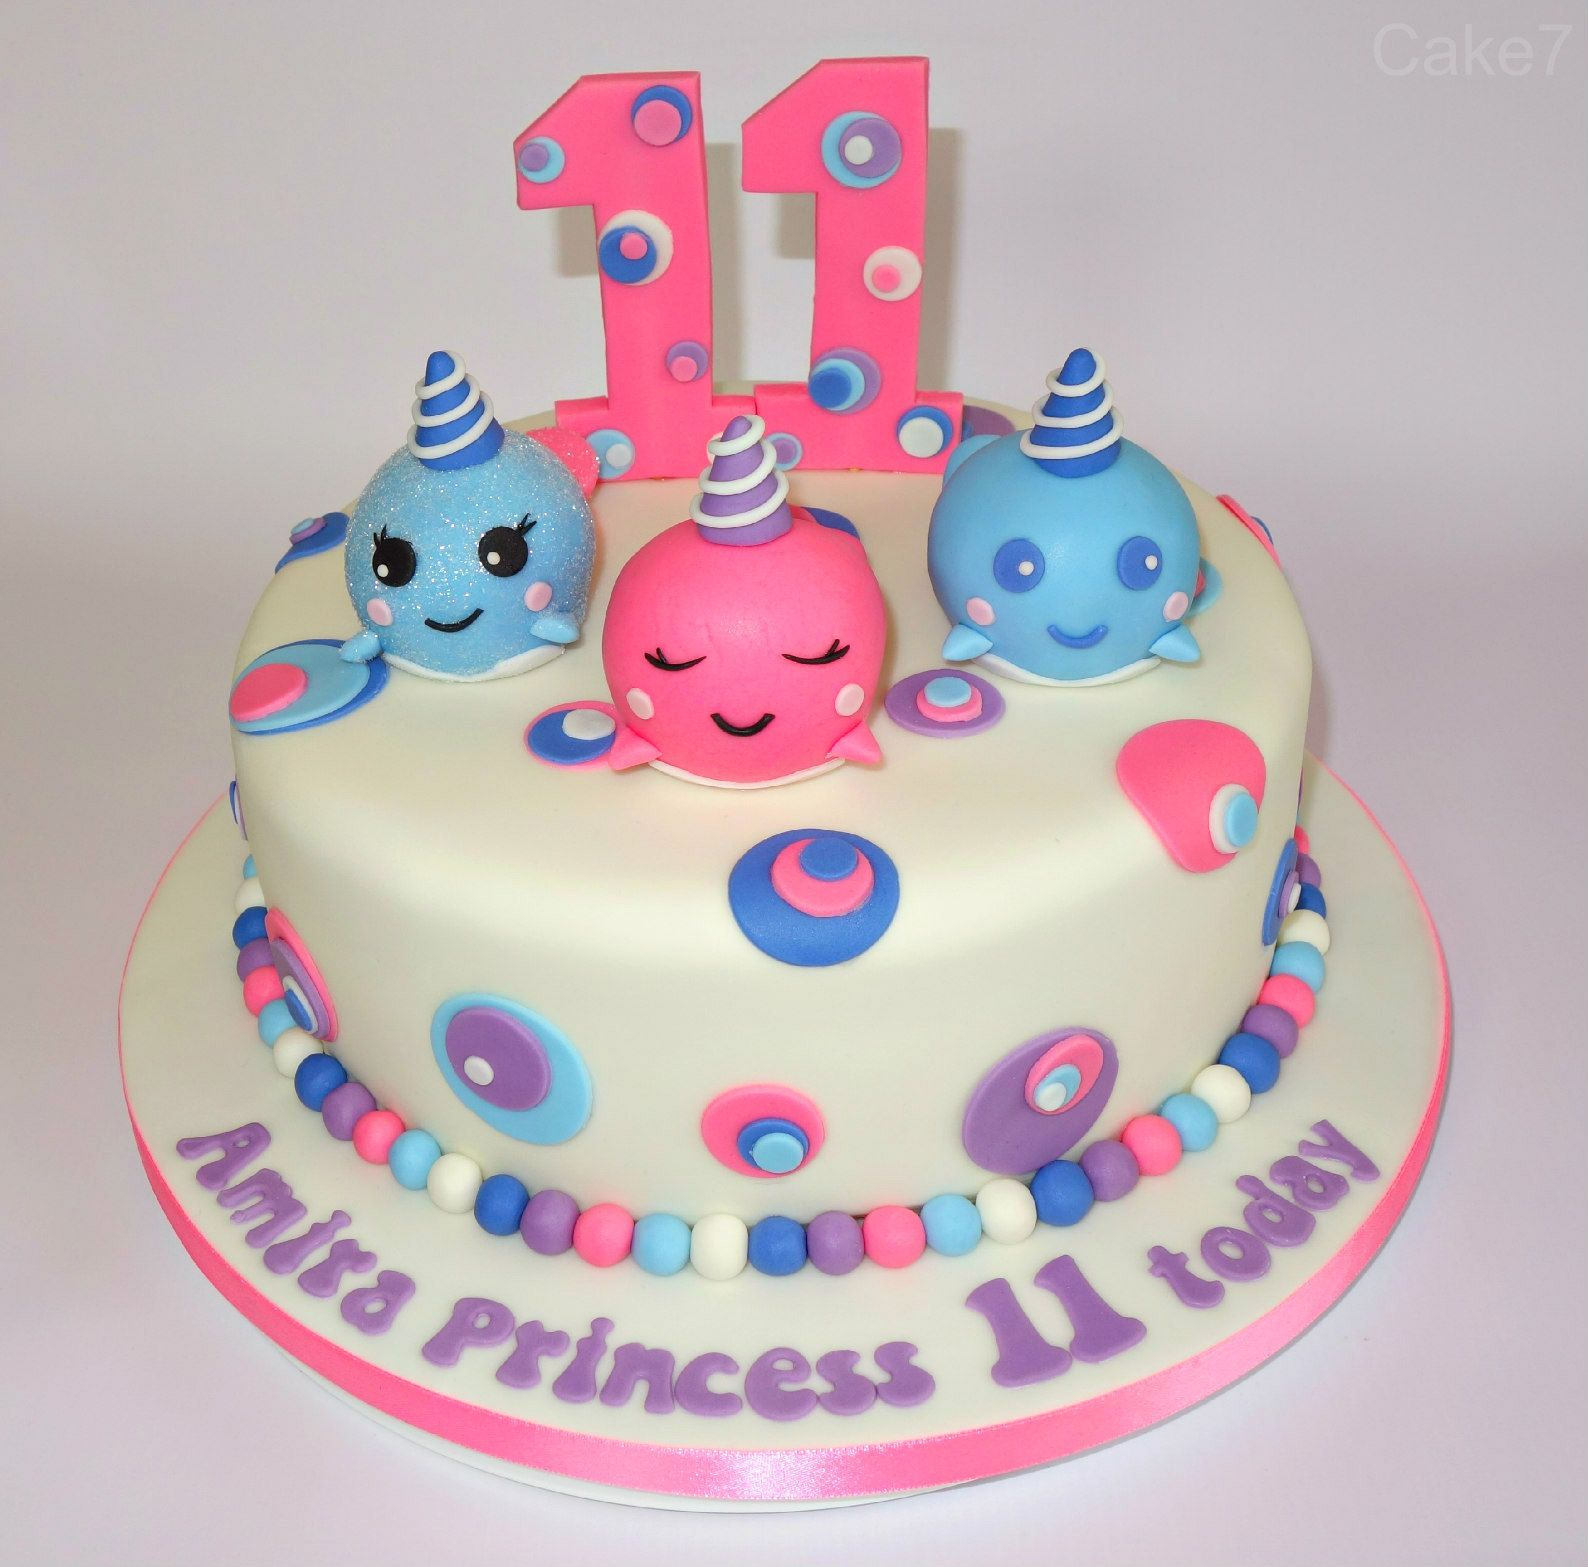 Squishy Toys Themed Cake Www Cakeseven Wix Facebook Cake7